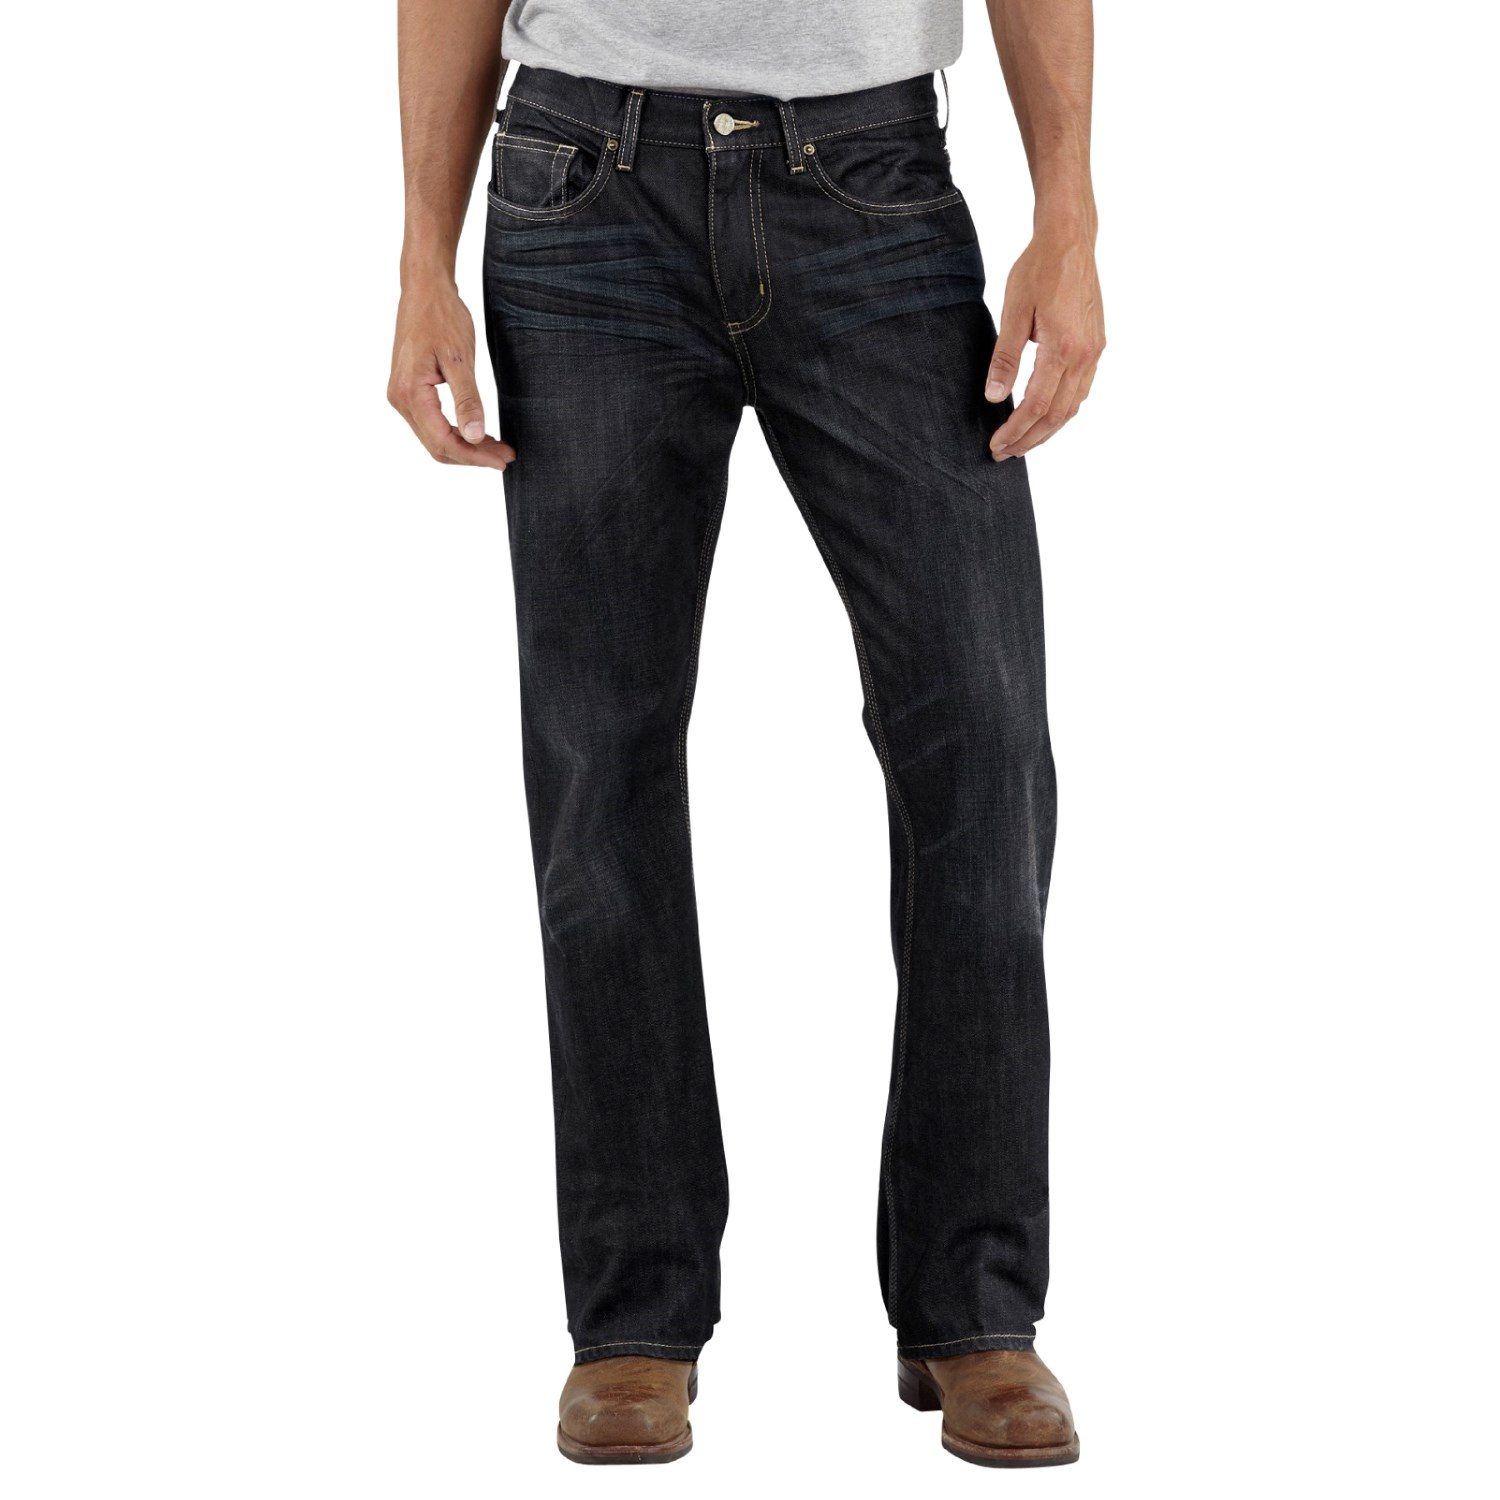 carhartt series 1889 slim fit jeans for men. Black Bedroom Furniture Sets. Home Design Ideas